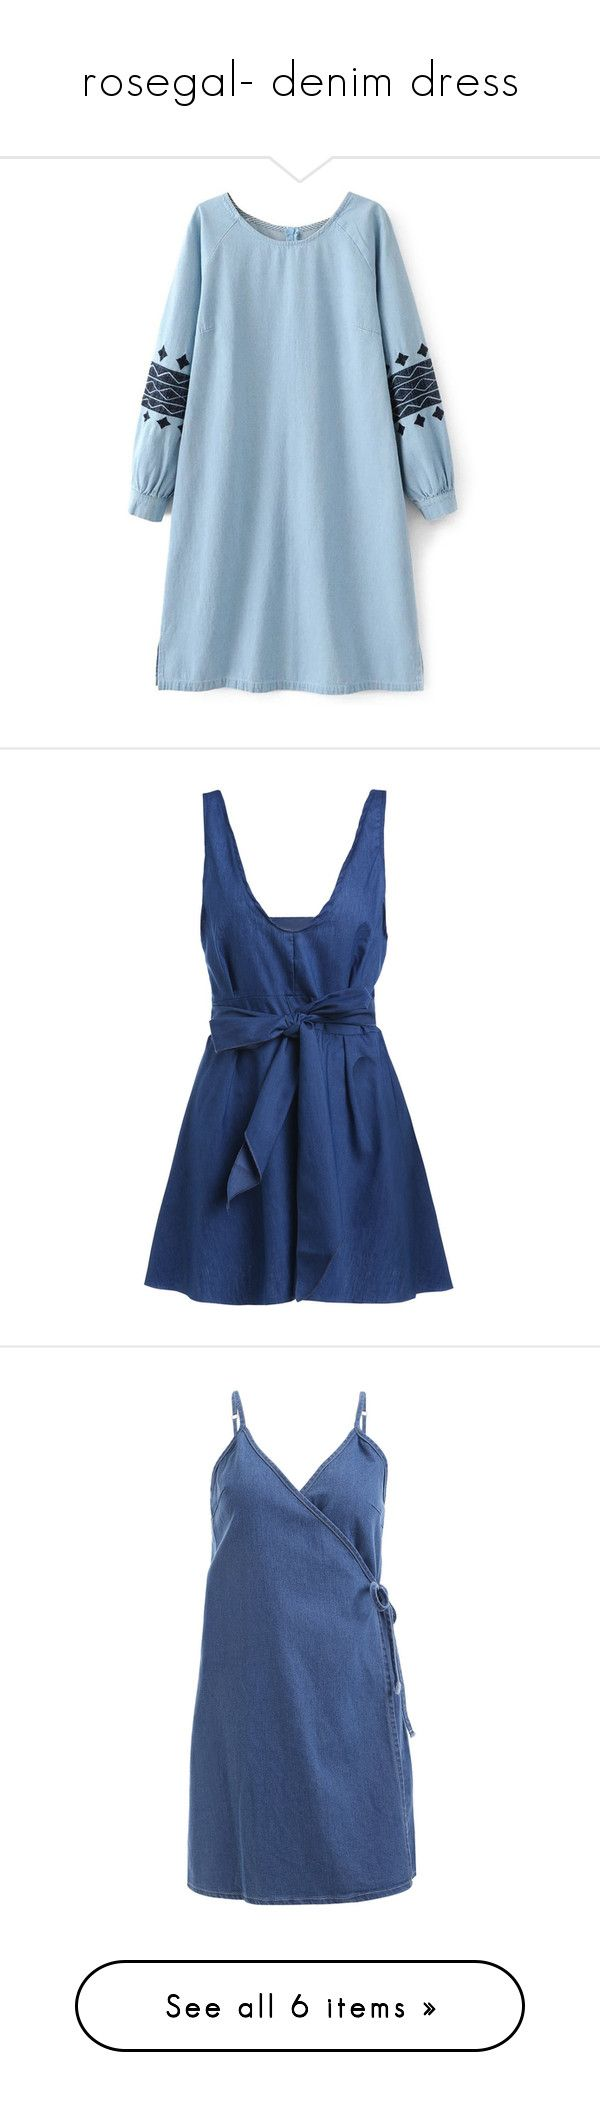 """""""rosegal- denim dress"""" by fshionme ❤ liked on Polyvore featuring dresses, rosegal, blue dress, embroidery dresses, blue sleeve dress, blue embroidered dress, long-sleeve denim dresses, sexy halter dress, halter neck cocktail dress and blue cocktail dresses"""